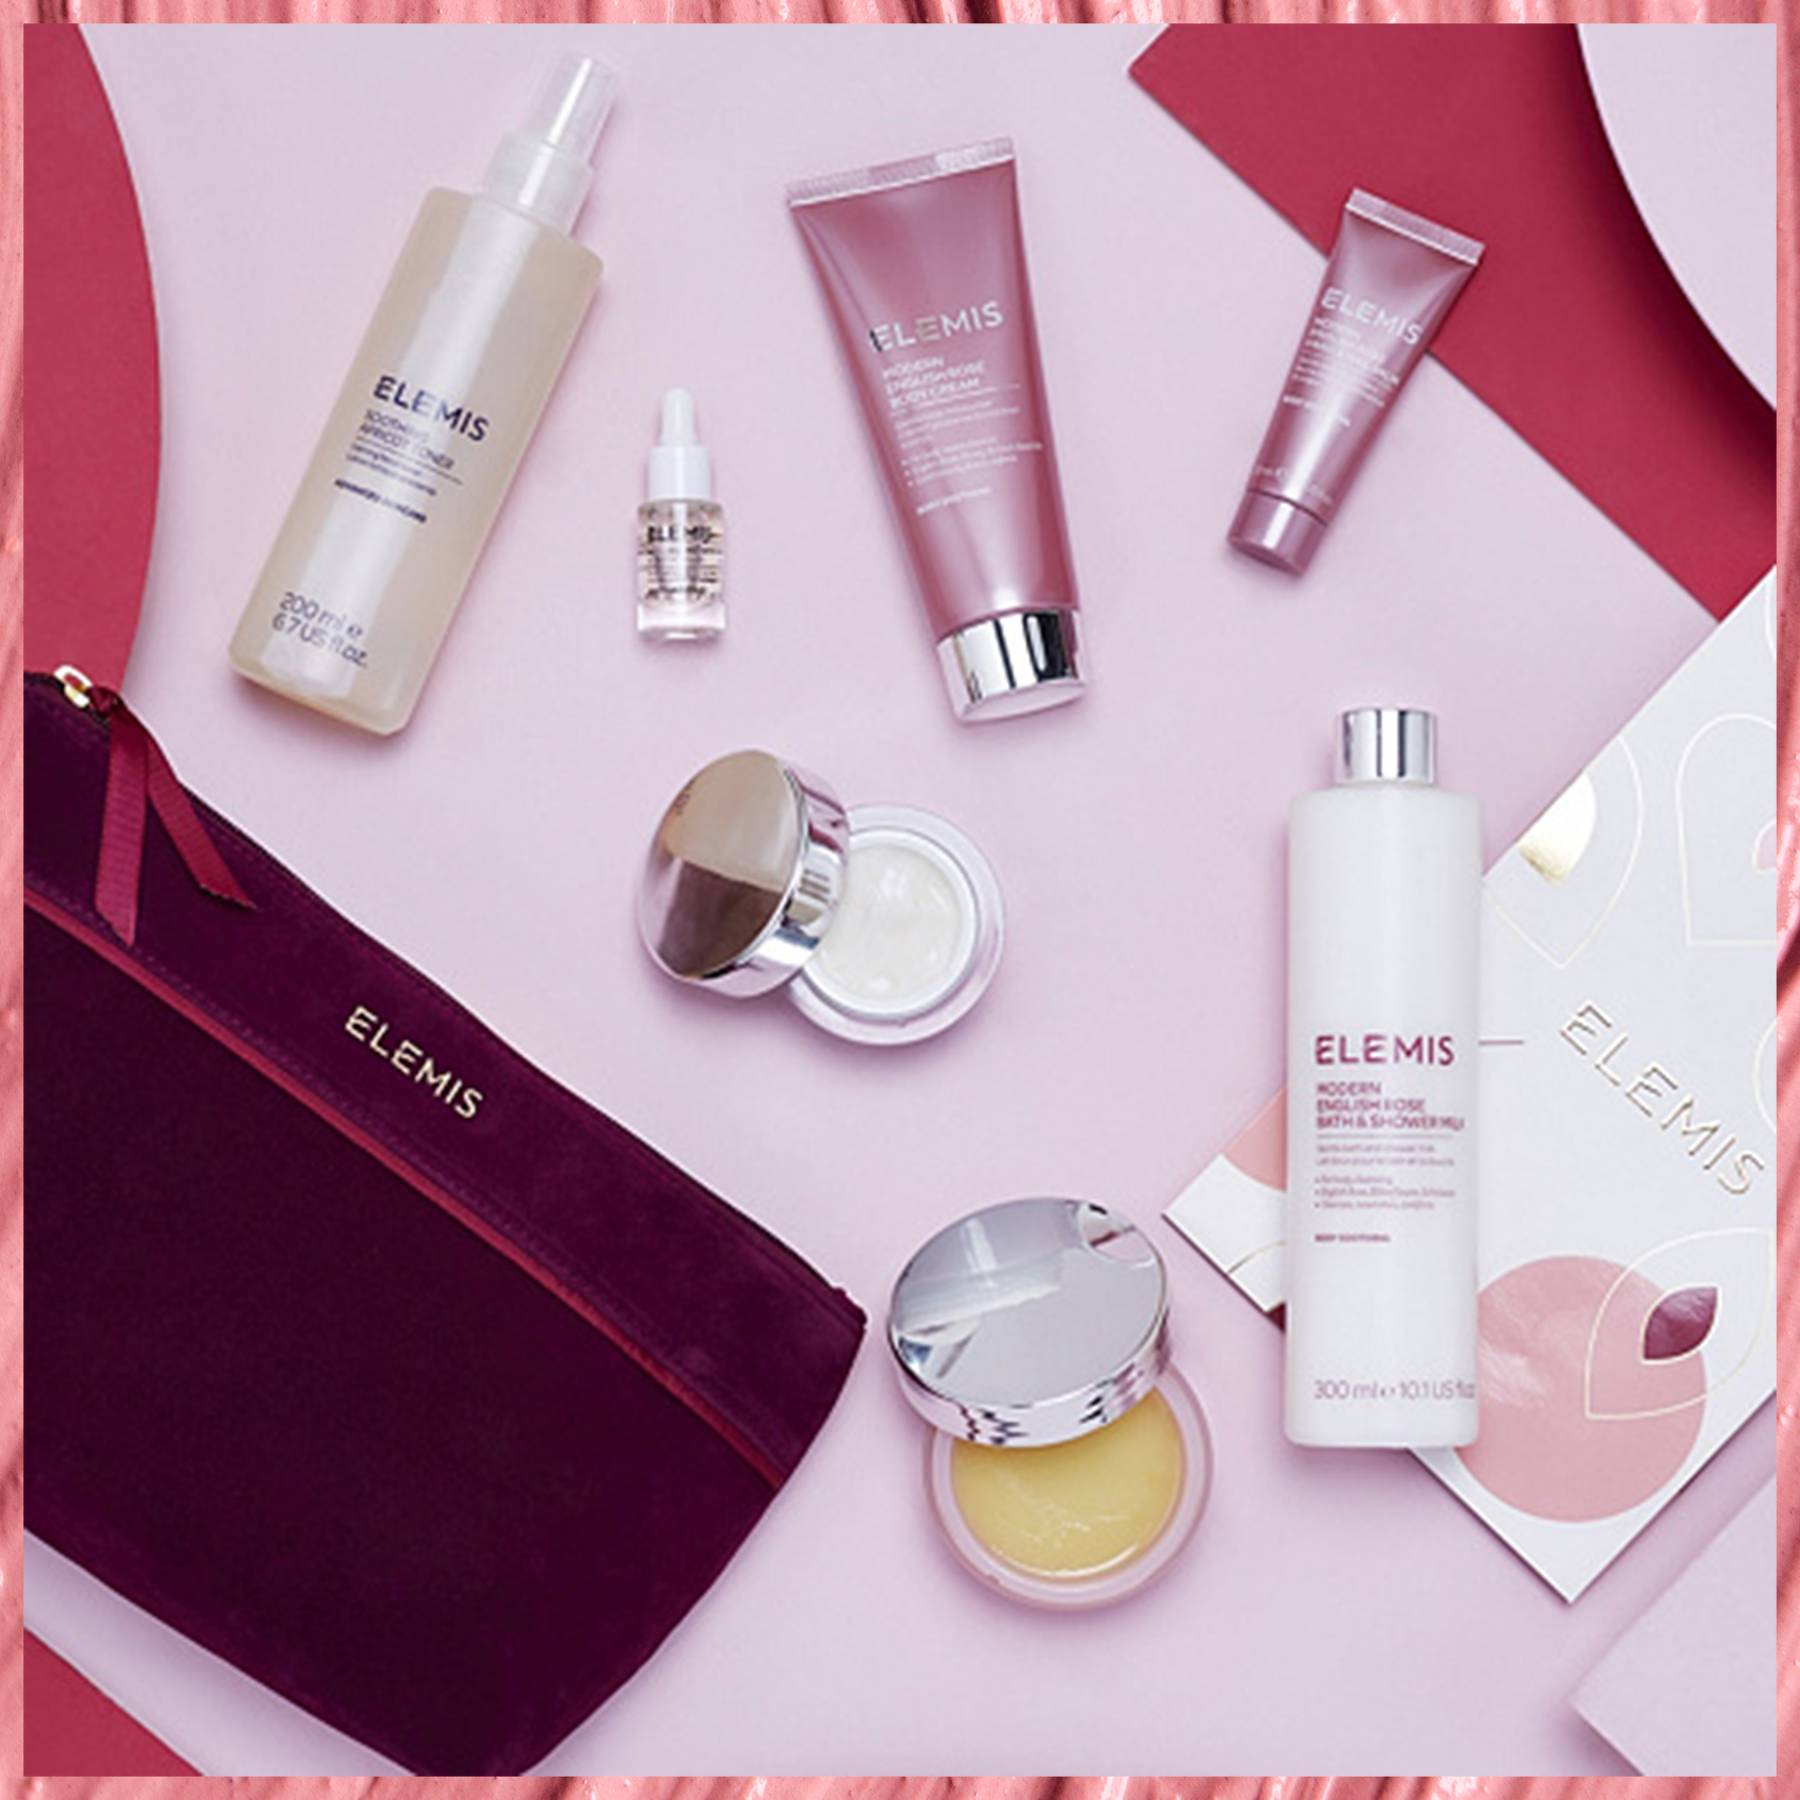 Over 35,000 of these Elemis sets have sold in 24 hours (making it the fastest-selling beauty collection ever!)